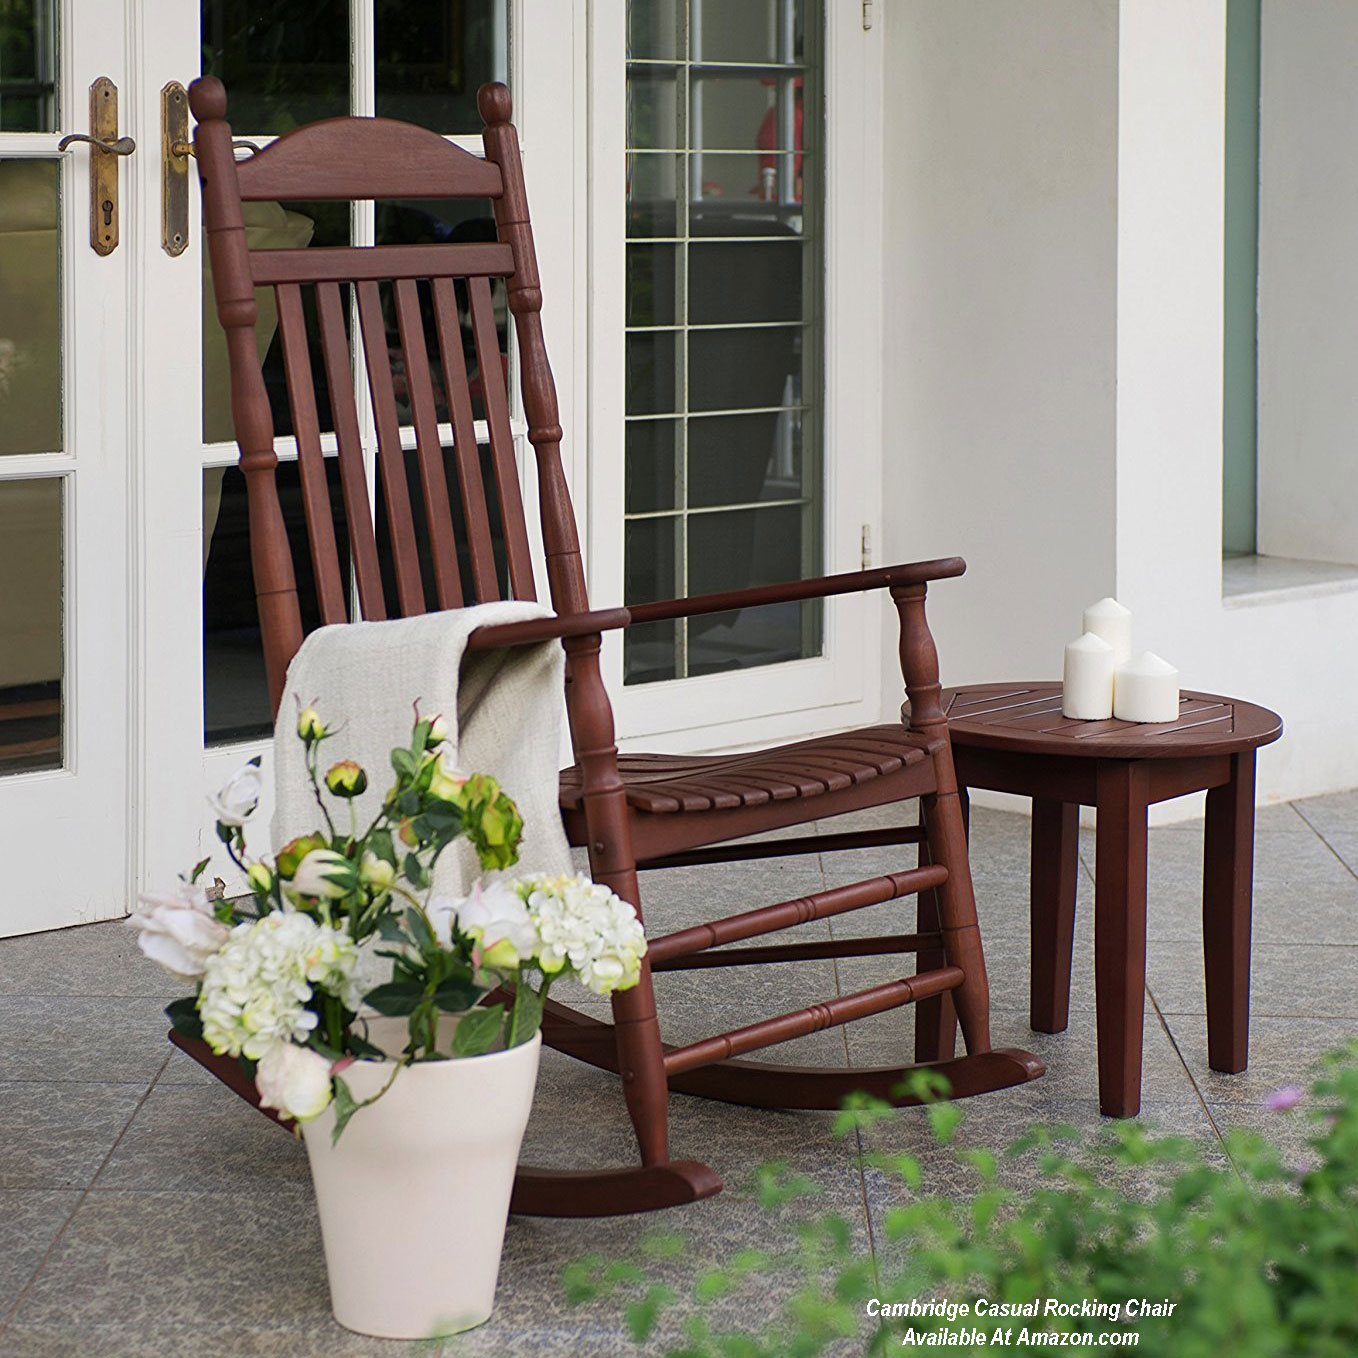 Marvelous Porch rocking chair on front porch from Amazon